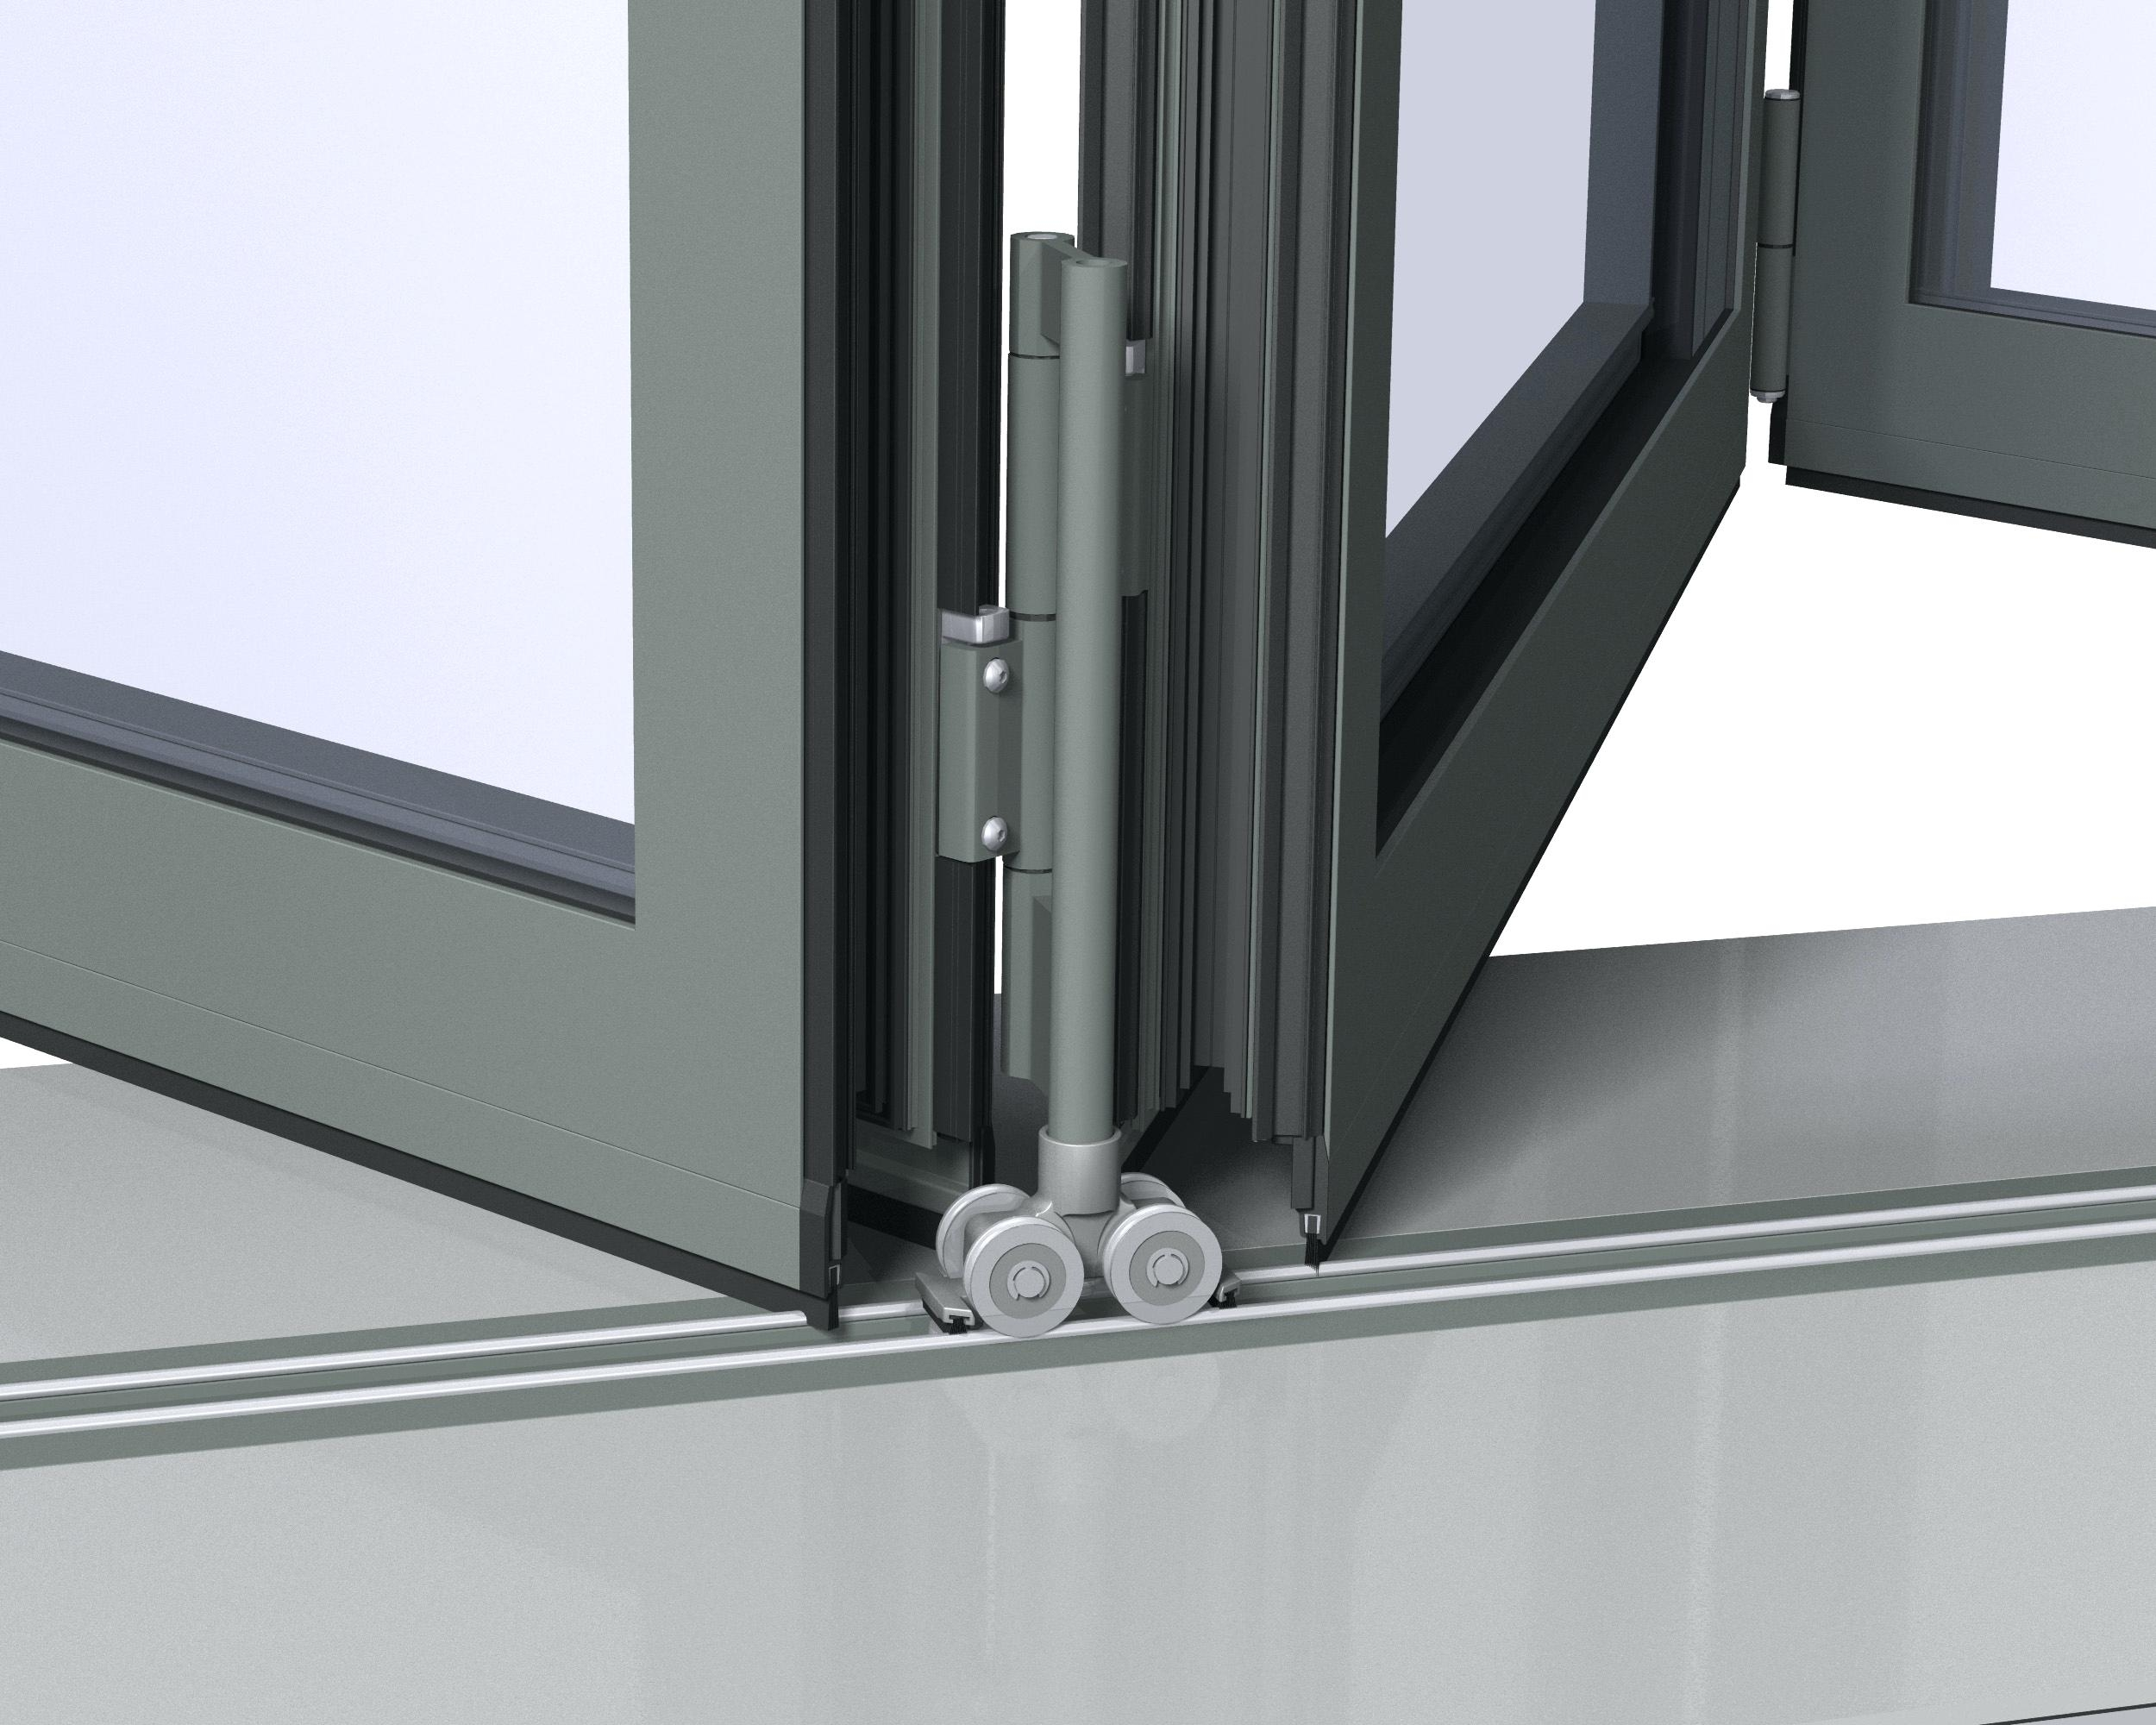 Sliding Glass Door Track Roller Railsliding door track rollers islademargarita